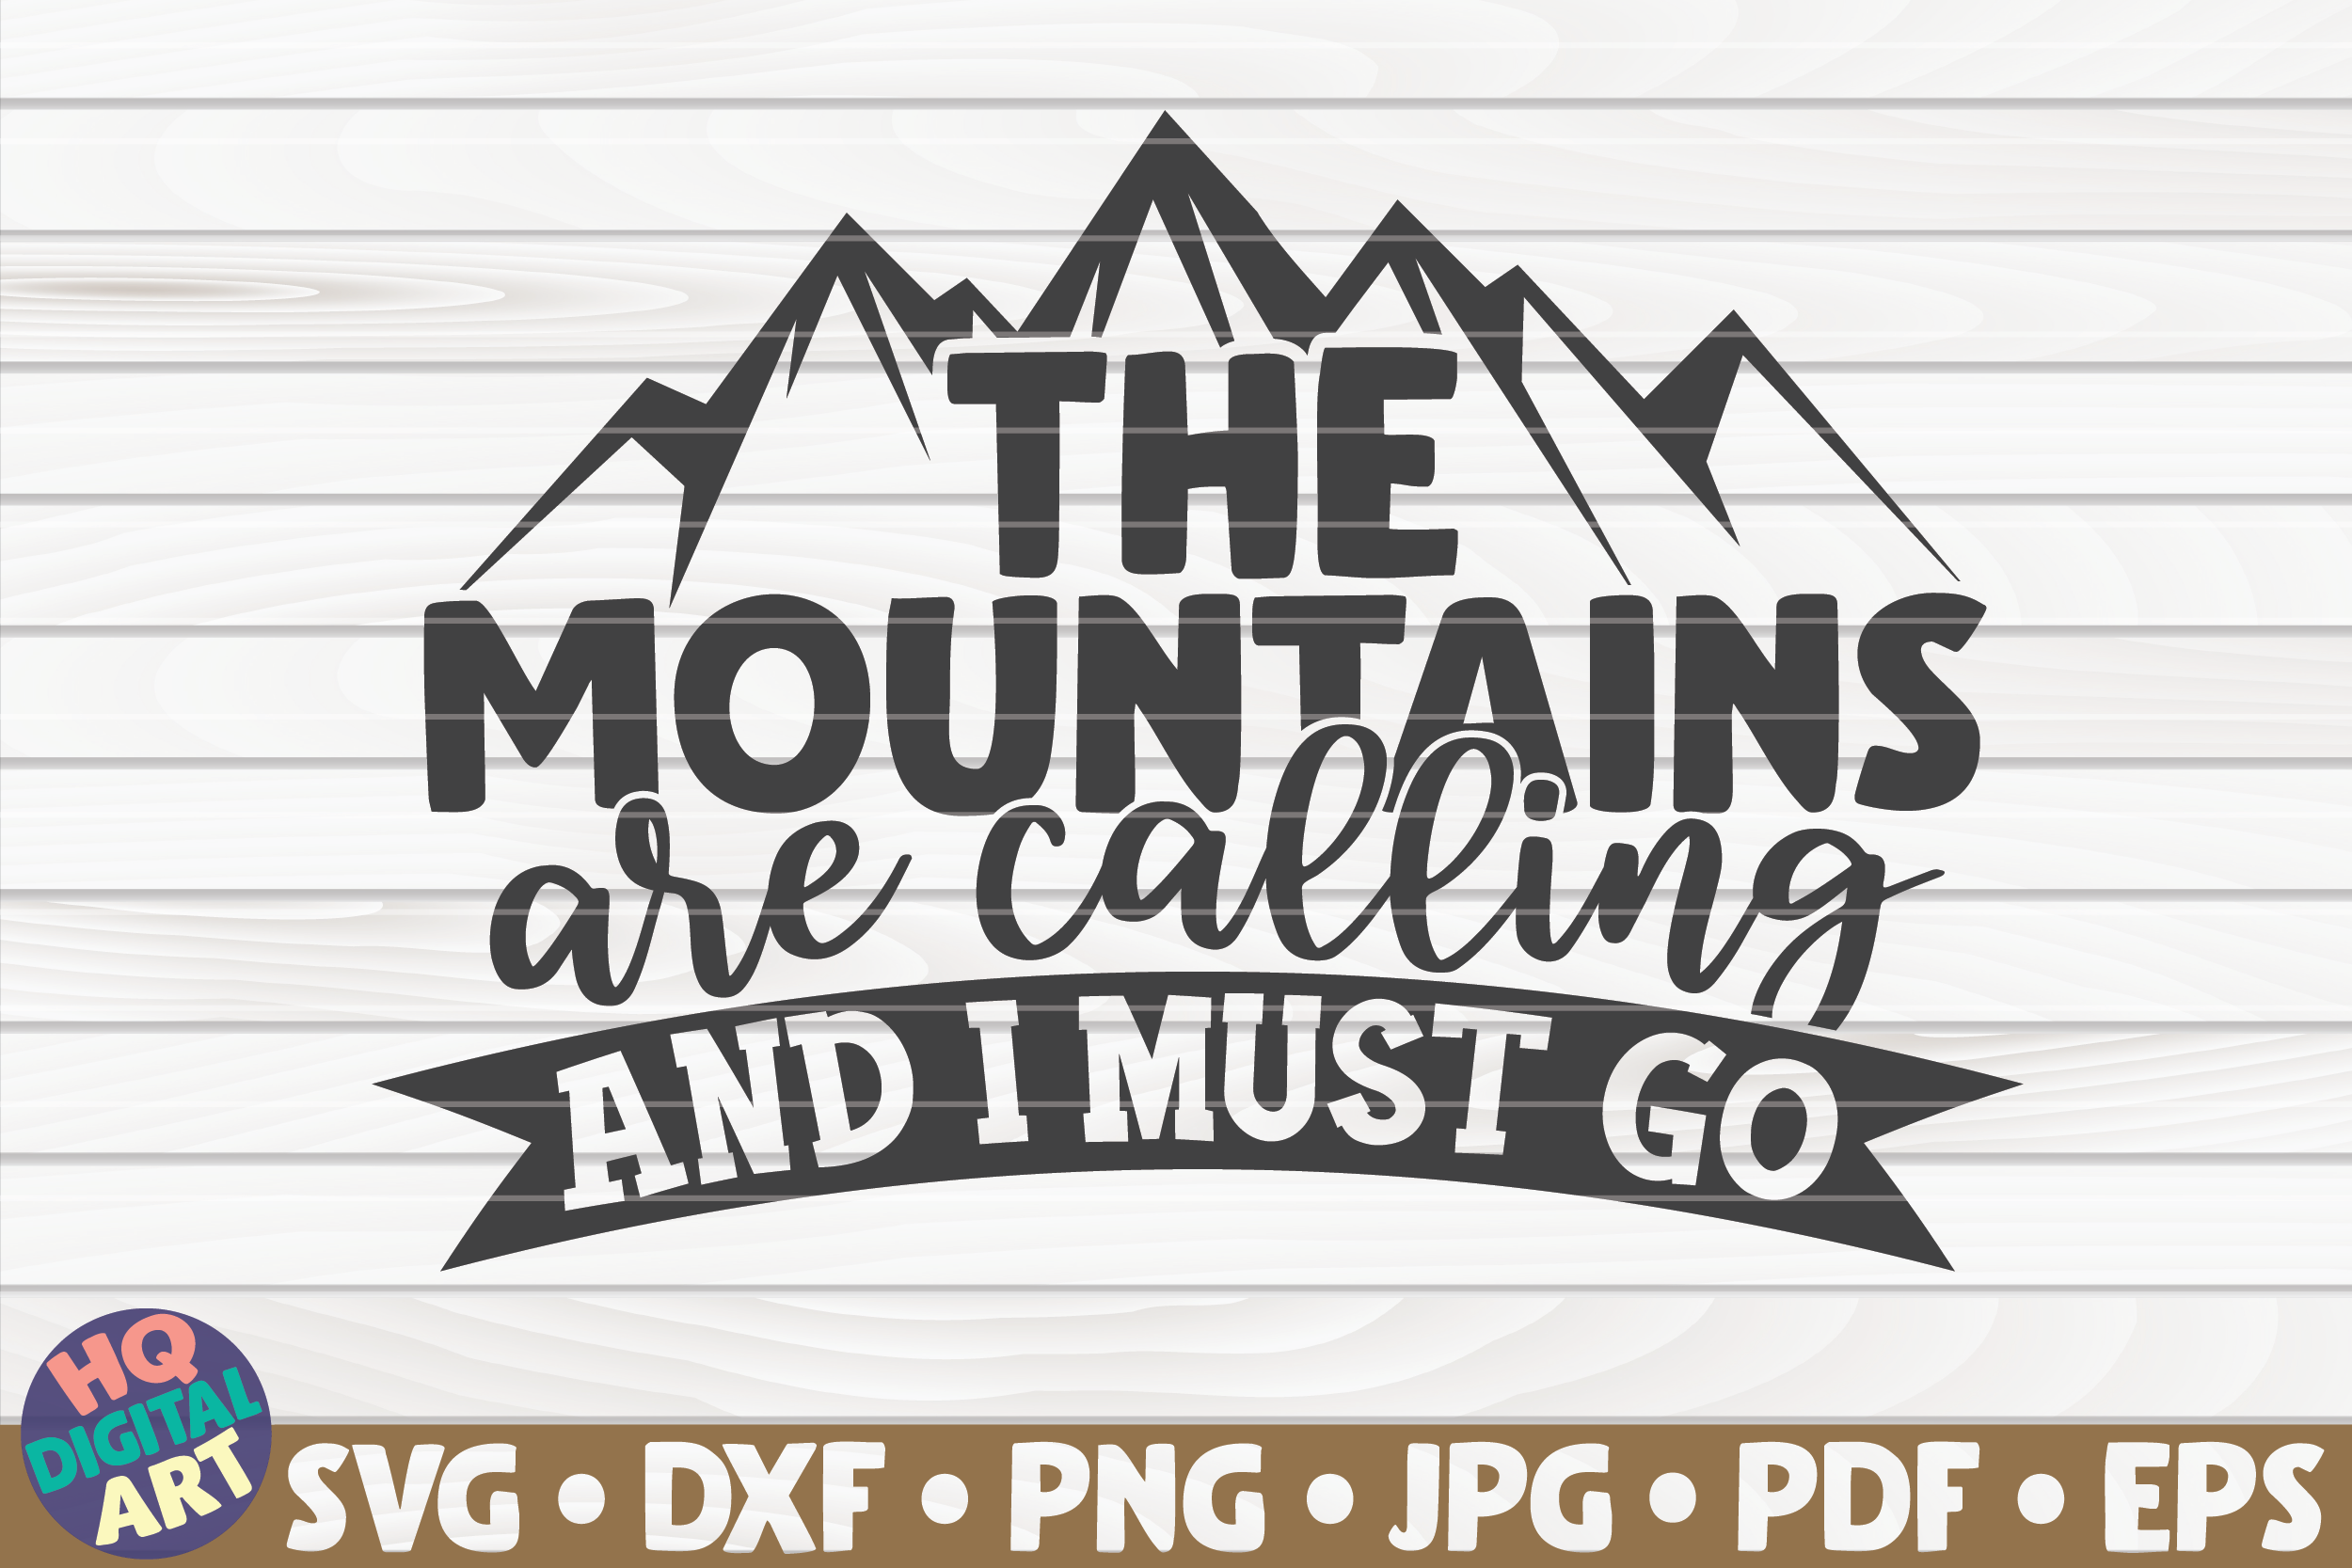 The Mountains Are Calling And I Must Go Svg Camping Quote By Hqdigitalart Thehungryjpeg Com